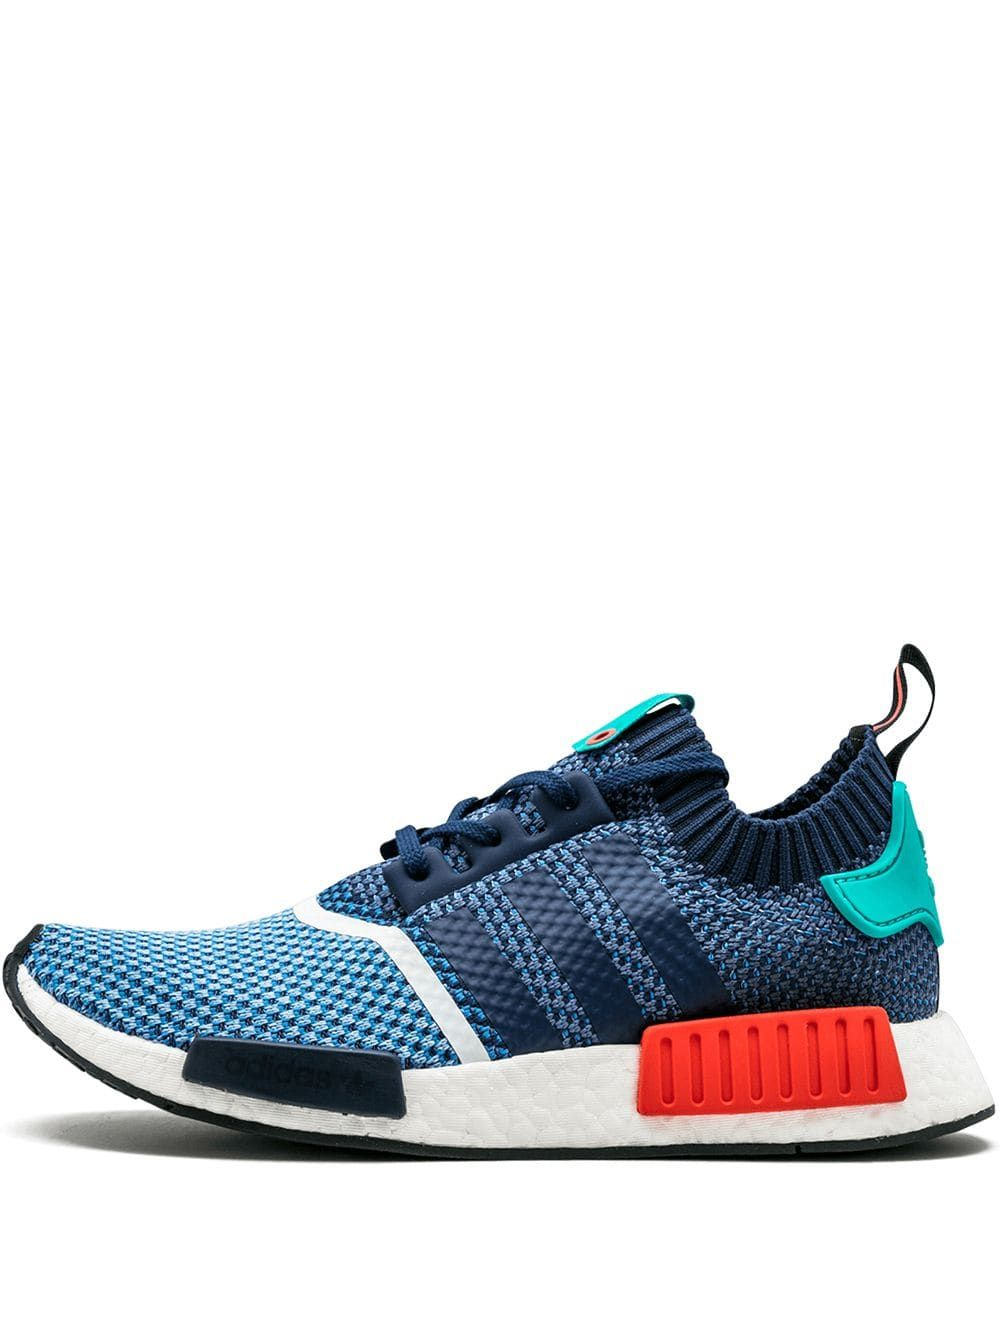 Stadium Goods blue Adidas NMD R1 PK Packers sneakers | Blue